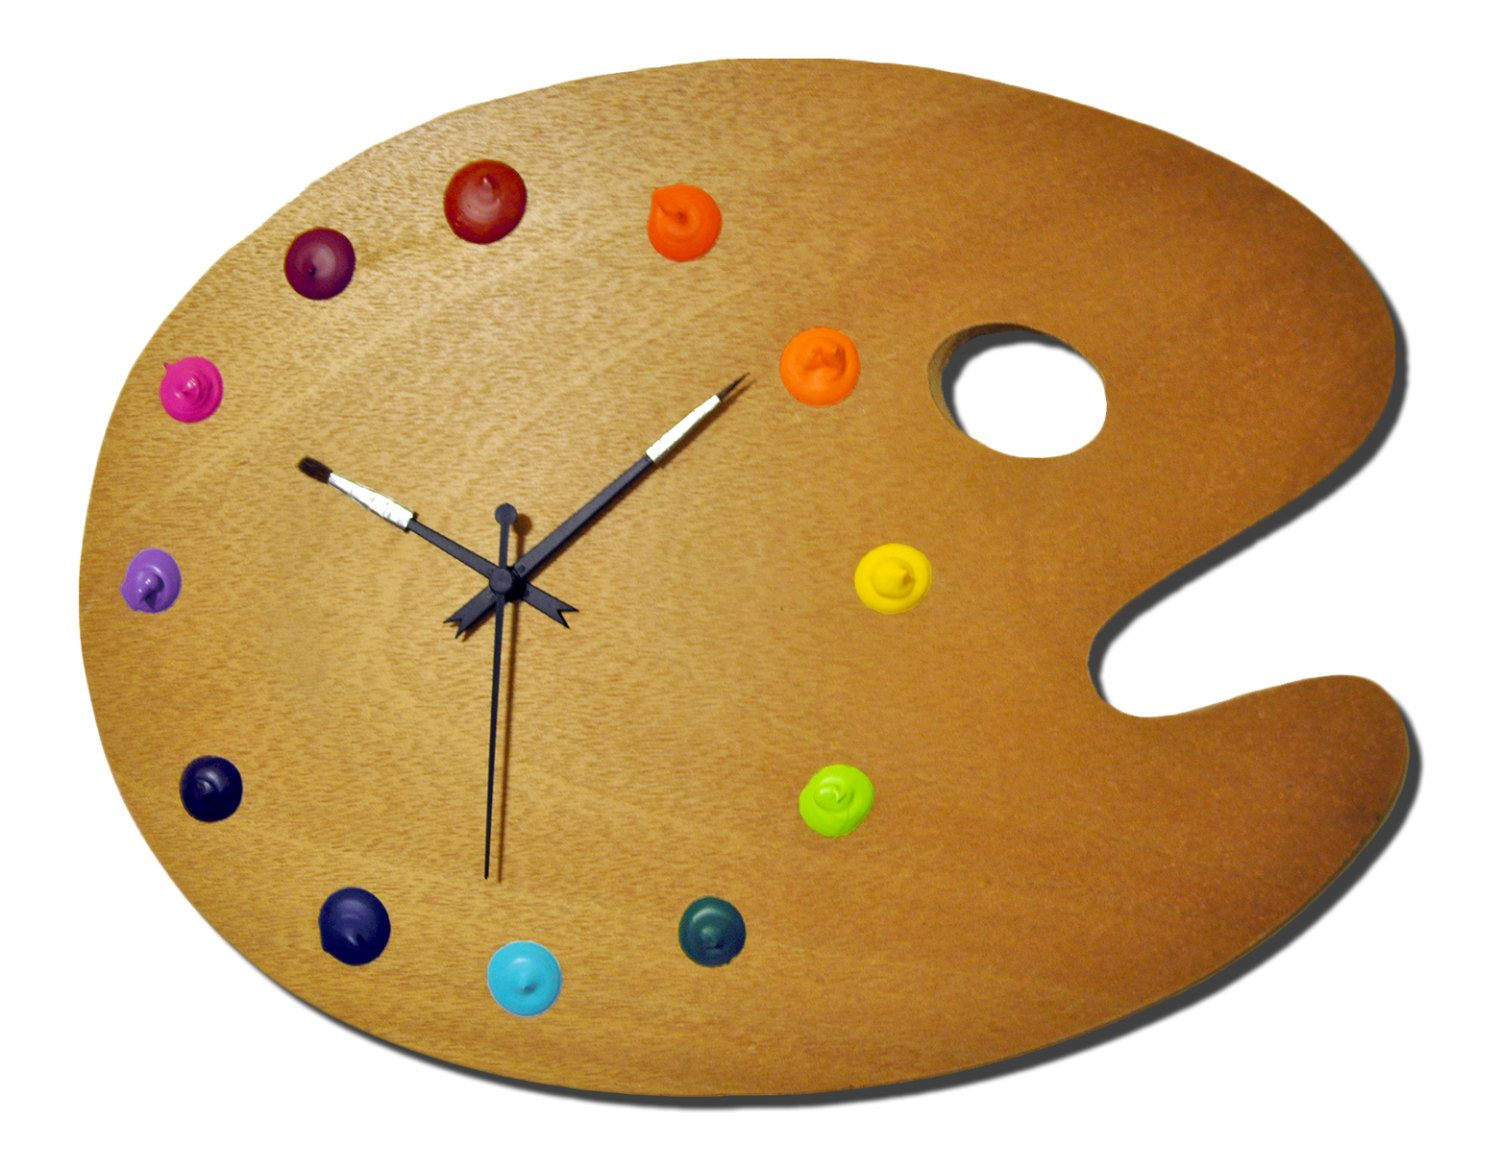 Interesting Clocks Artist Palette Wall Clock With Real Paint Globs For The